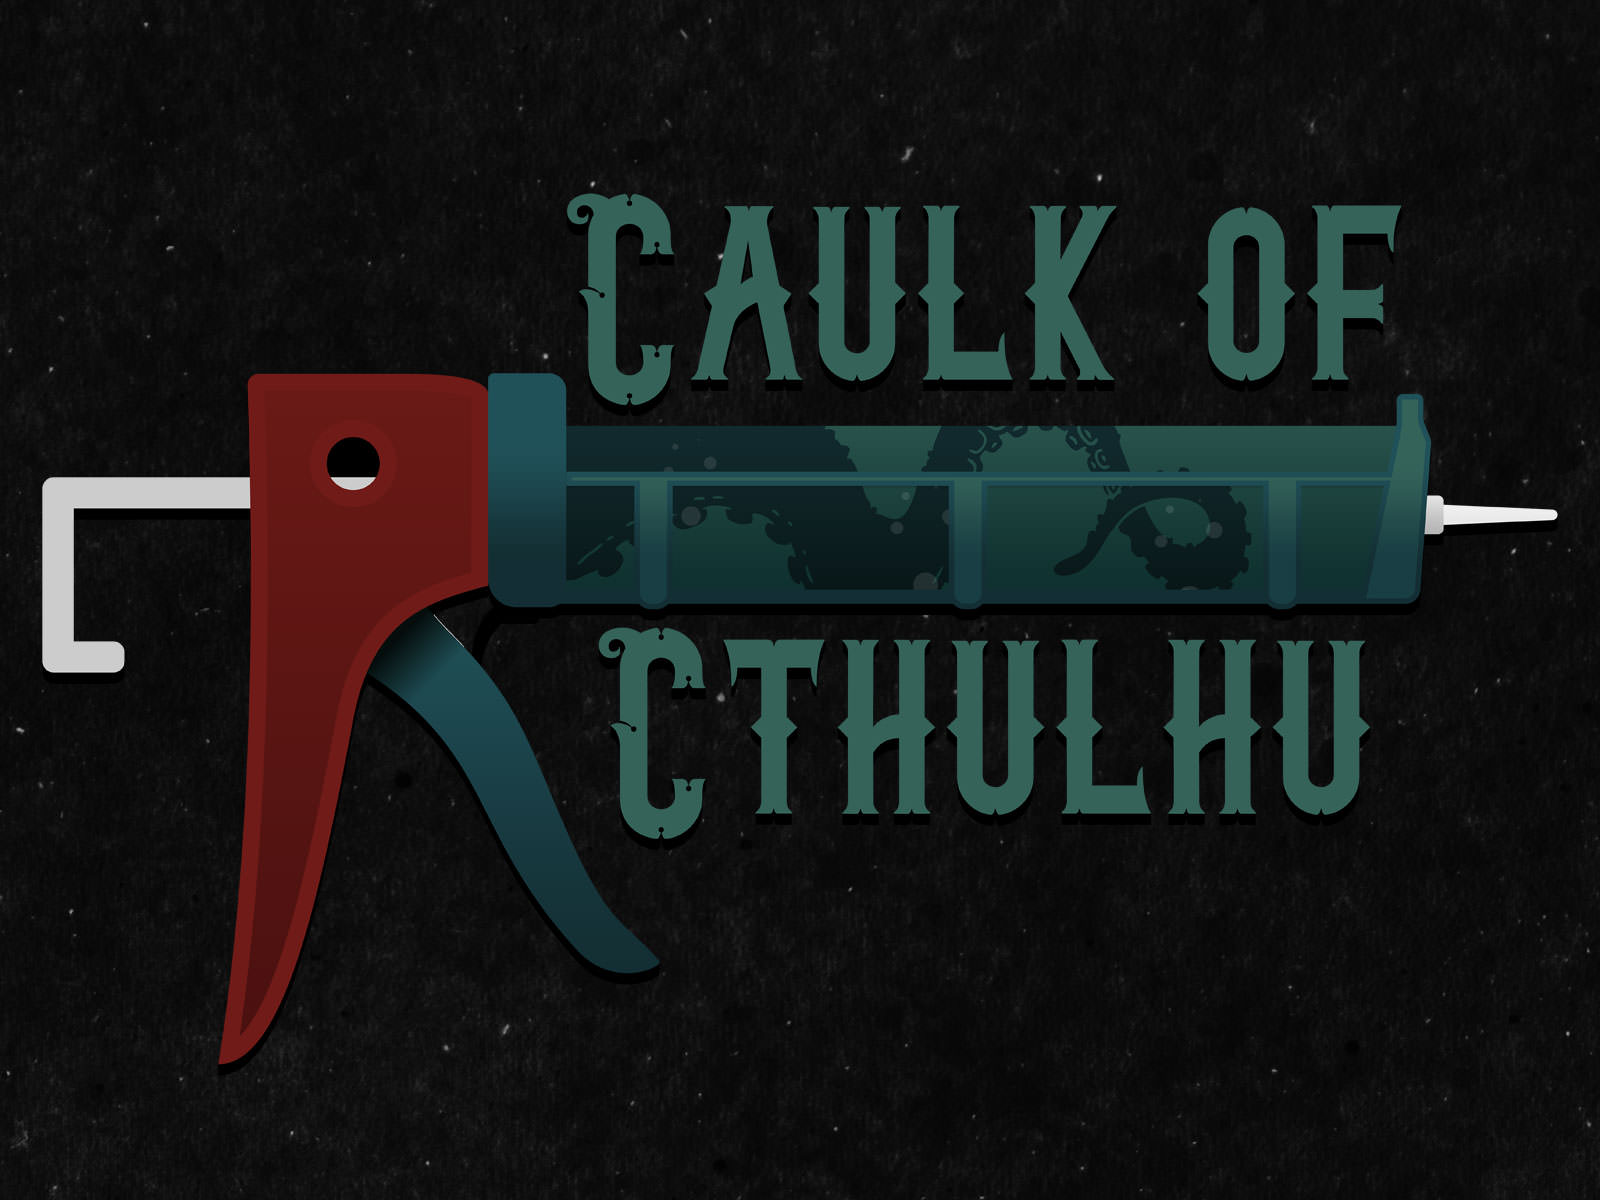 caulk of cthulhu top - The Caulk of Cthulhu caulk of cthulhu top - Graphic design